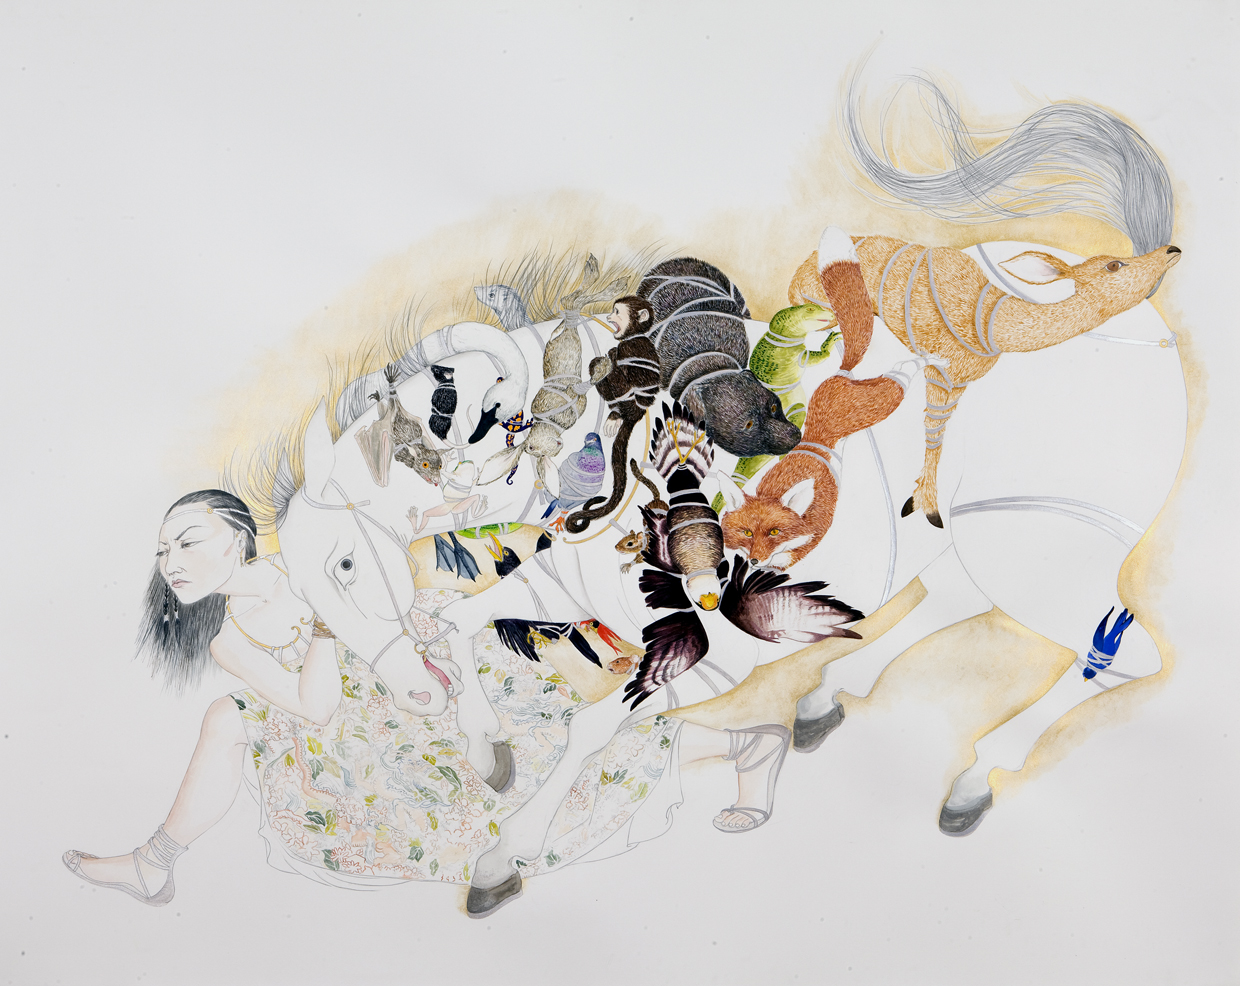 Accumulation , 2009 Graphite, ink, watercolor on paper 37 X 49 inches Private collection